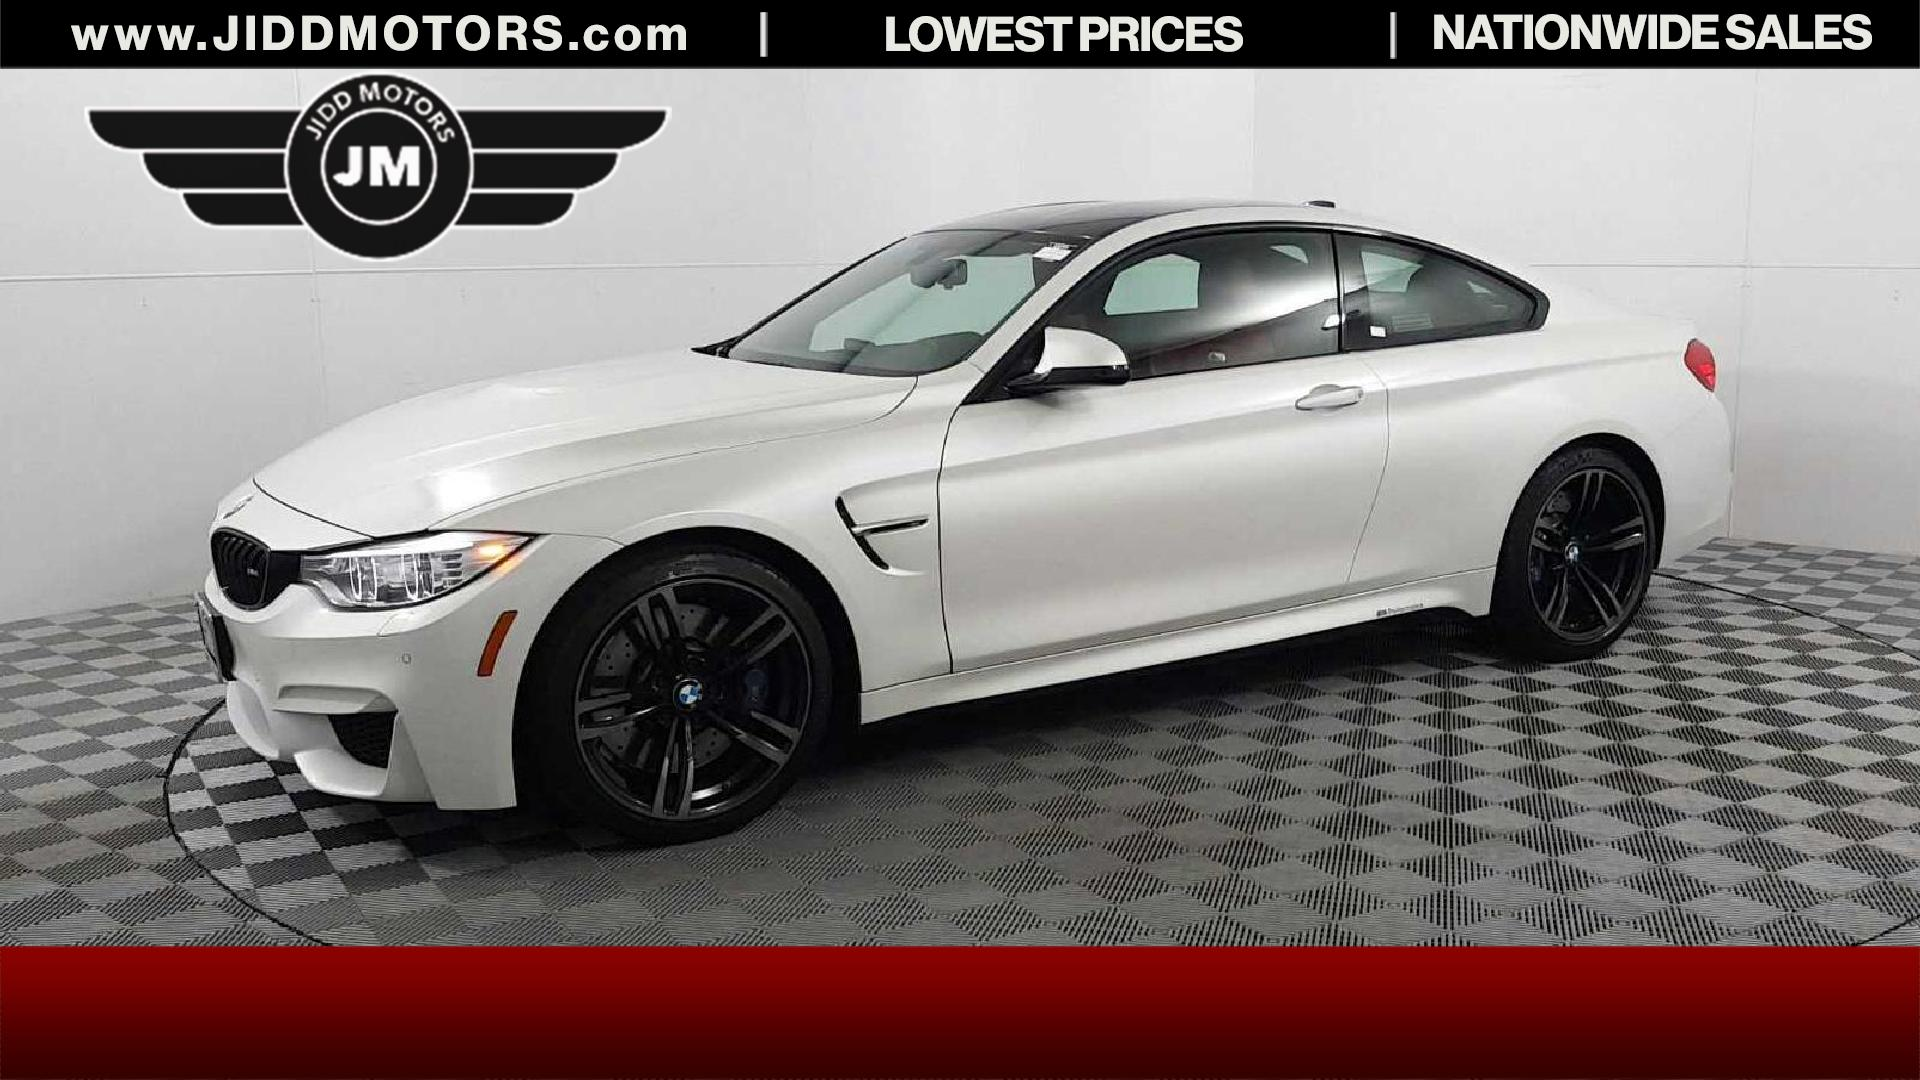 Luxury Used 2015 BMW M4 for Sale in Chicago IL Jidd Motors